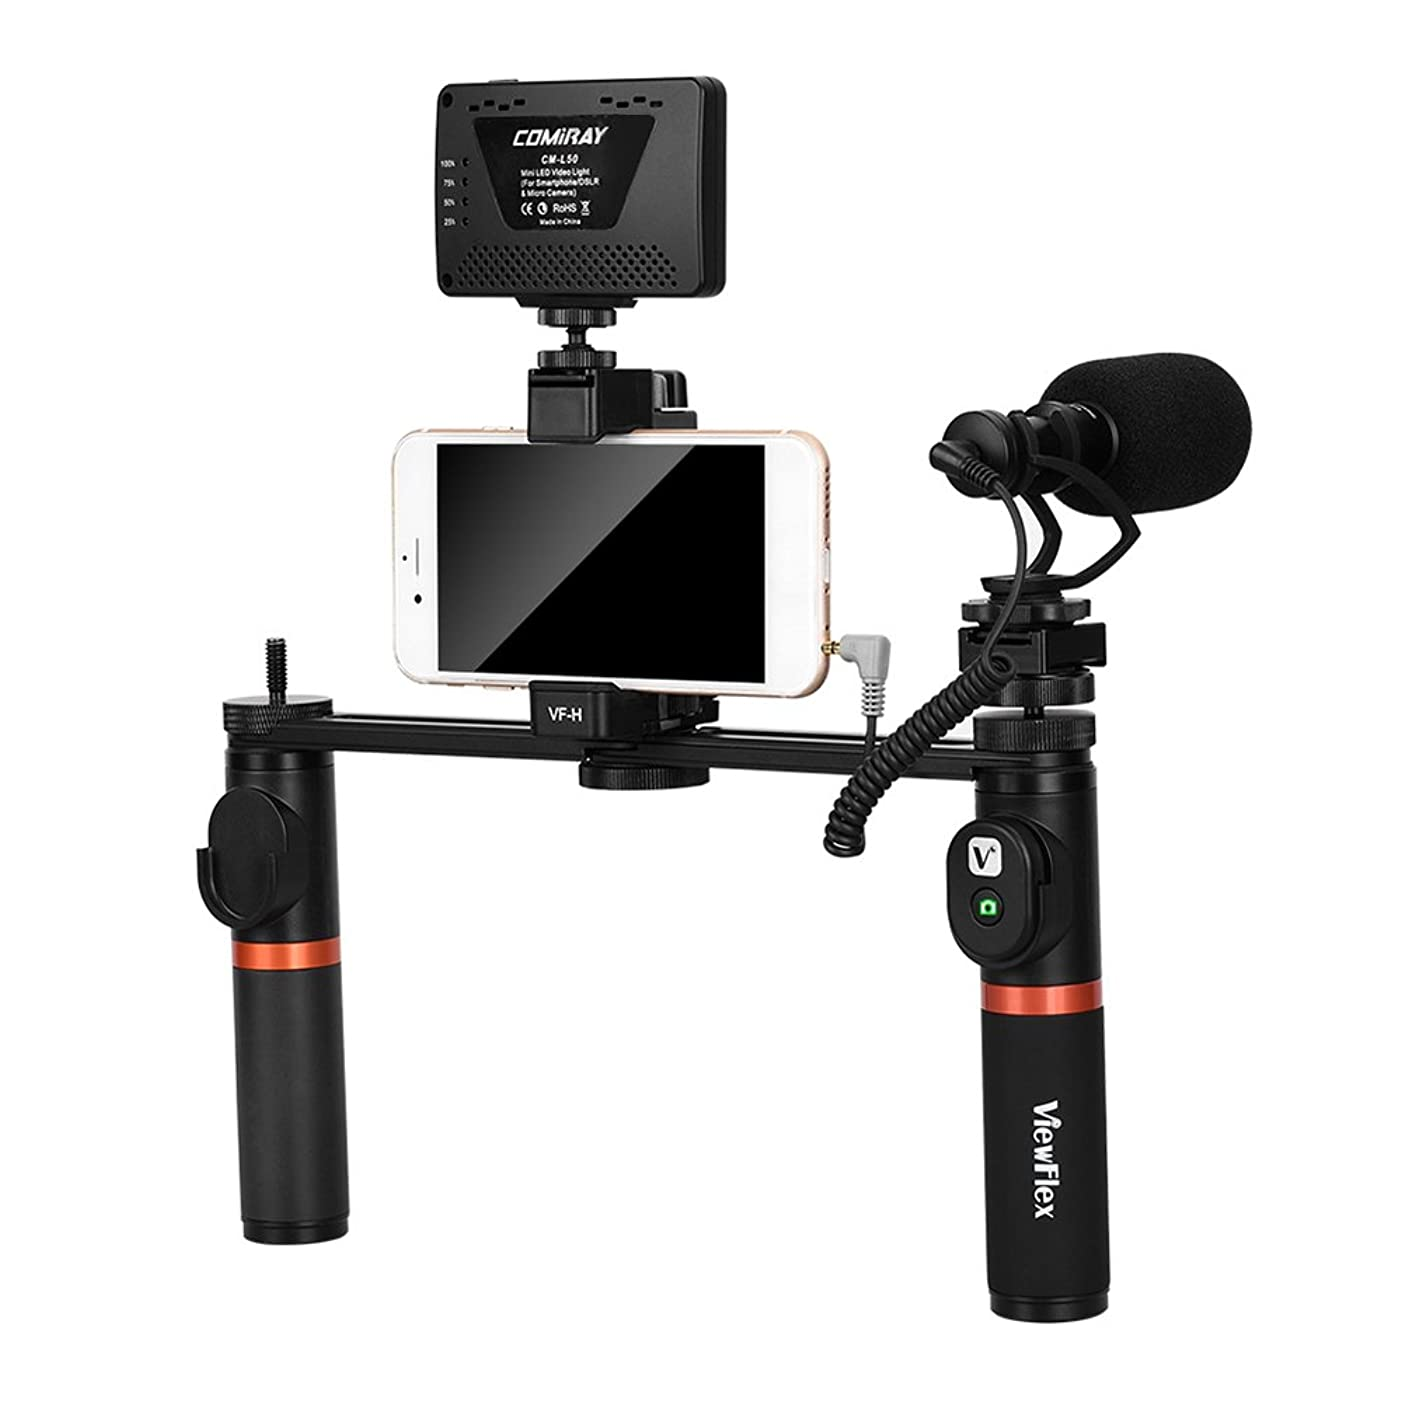 TPOTOO ViewFlex VF-H7 Smartphone Video Rig Dual Handheld Metal Grip Stabilizer Kit with Remote Control/Dimmable LED Light/Microphone for iPhone 6 6s Plus for Samsung Galaxy S8+ S8 Note 3 Huawei